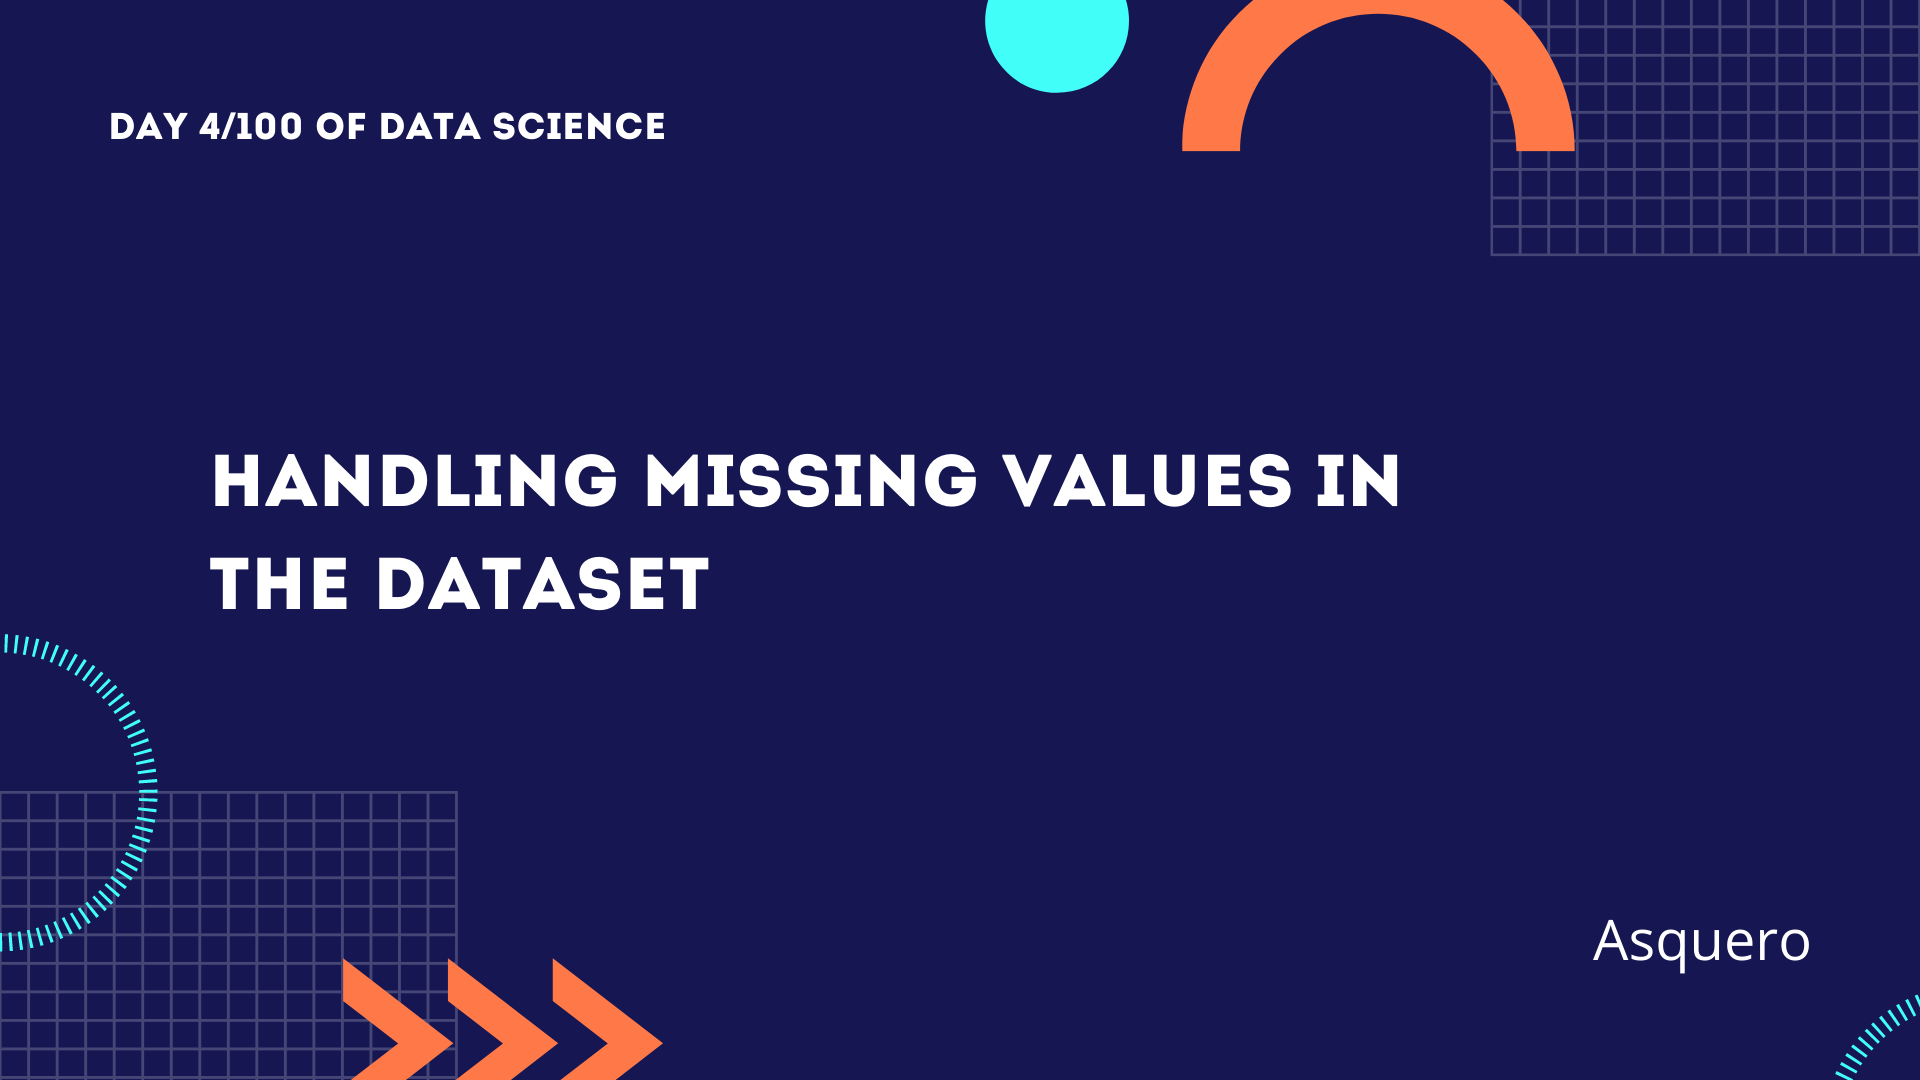 Handling missing values in the dataset